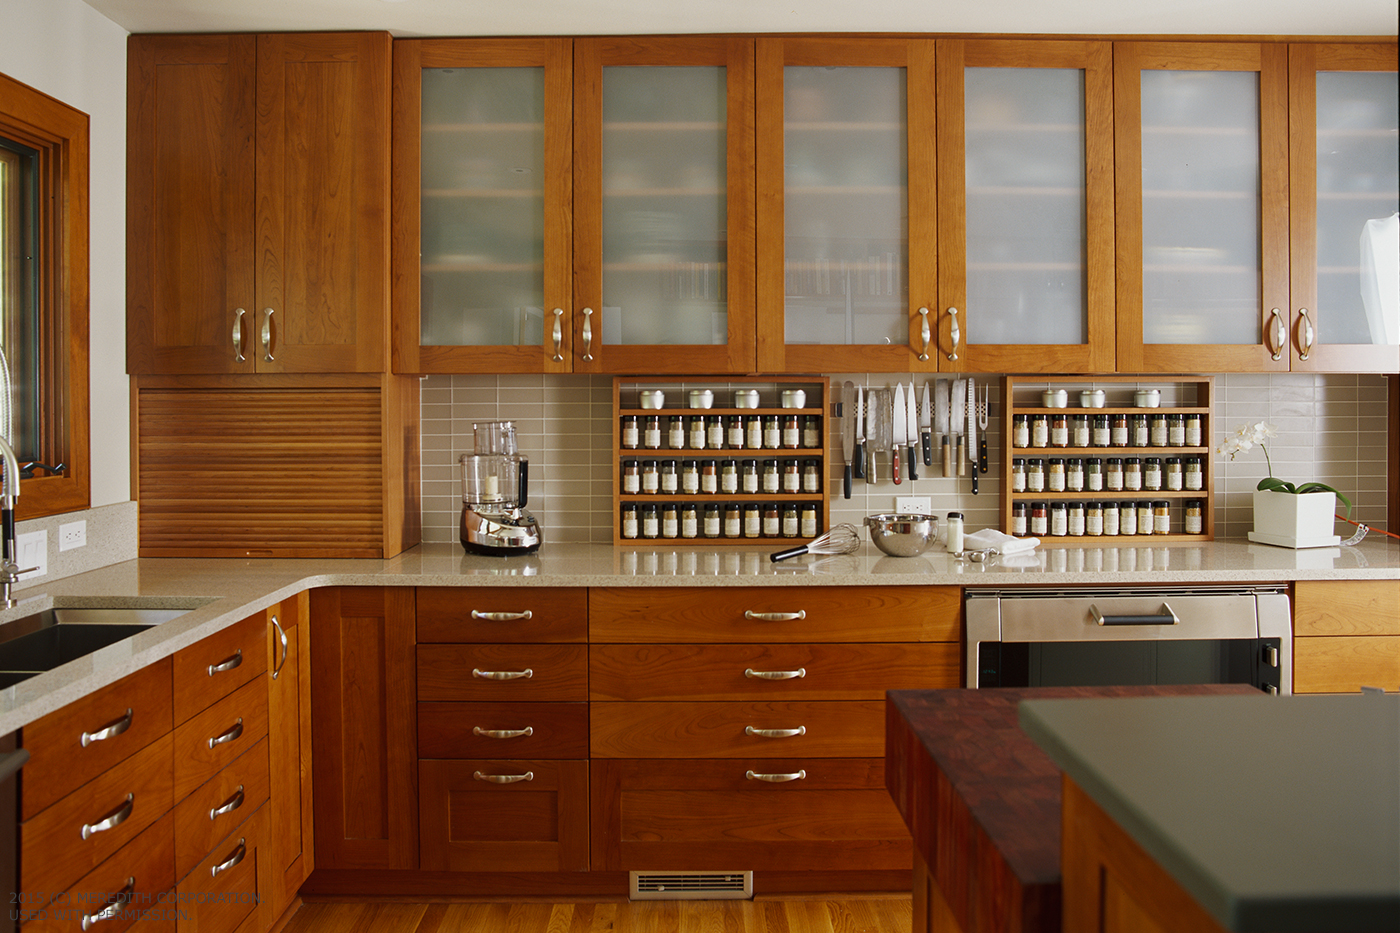 functional & fabulous kitchen design ideas | better homes and